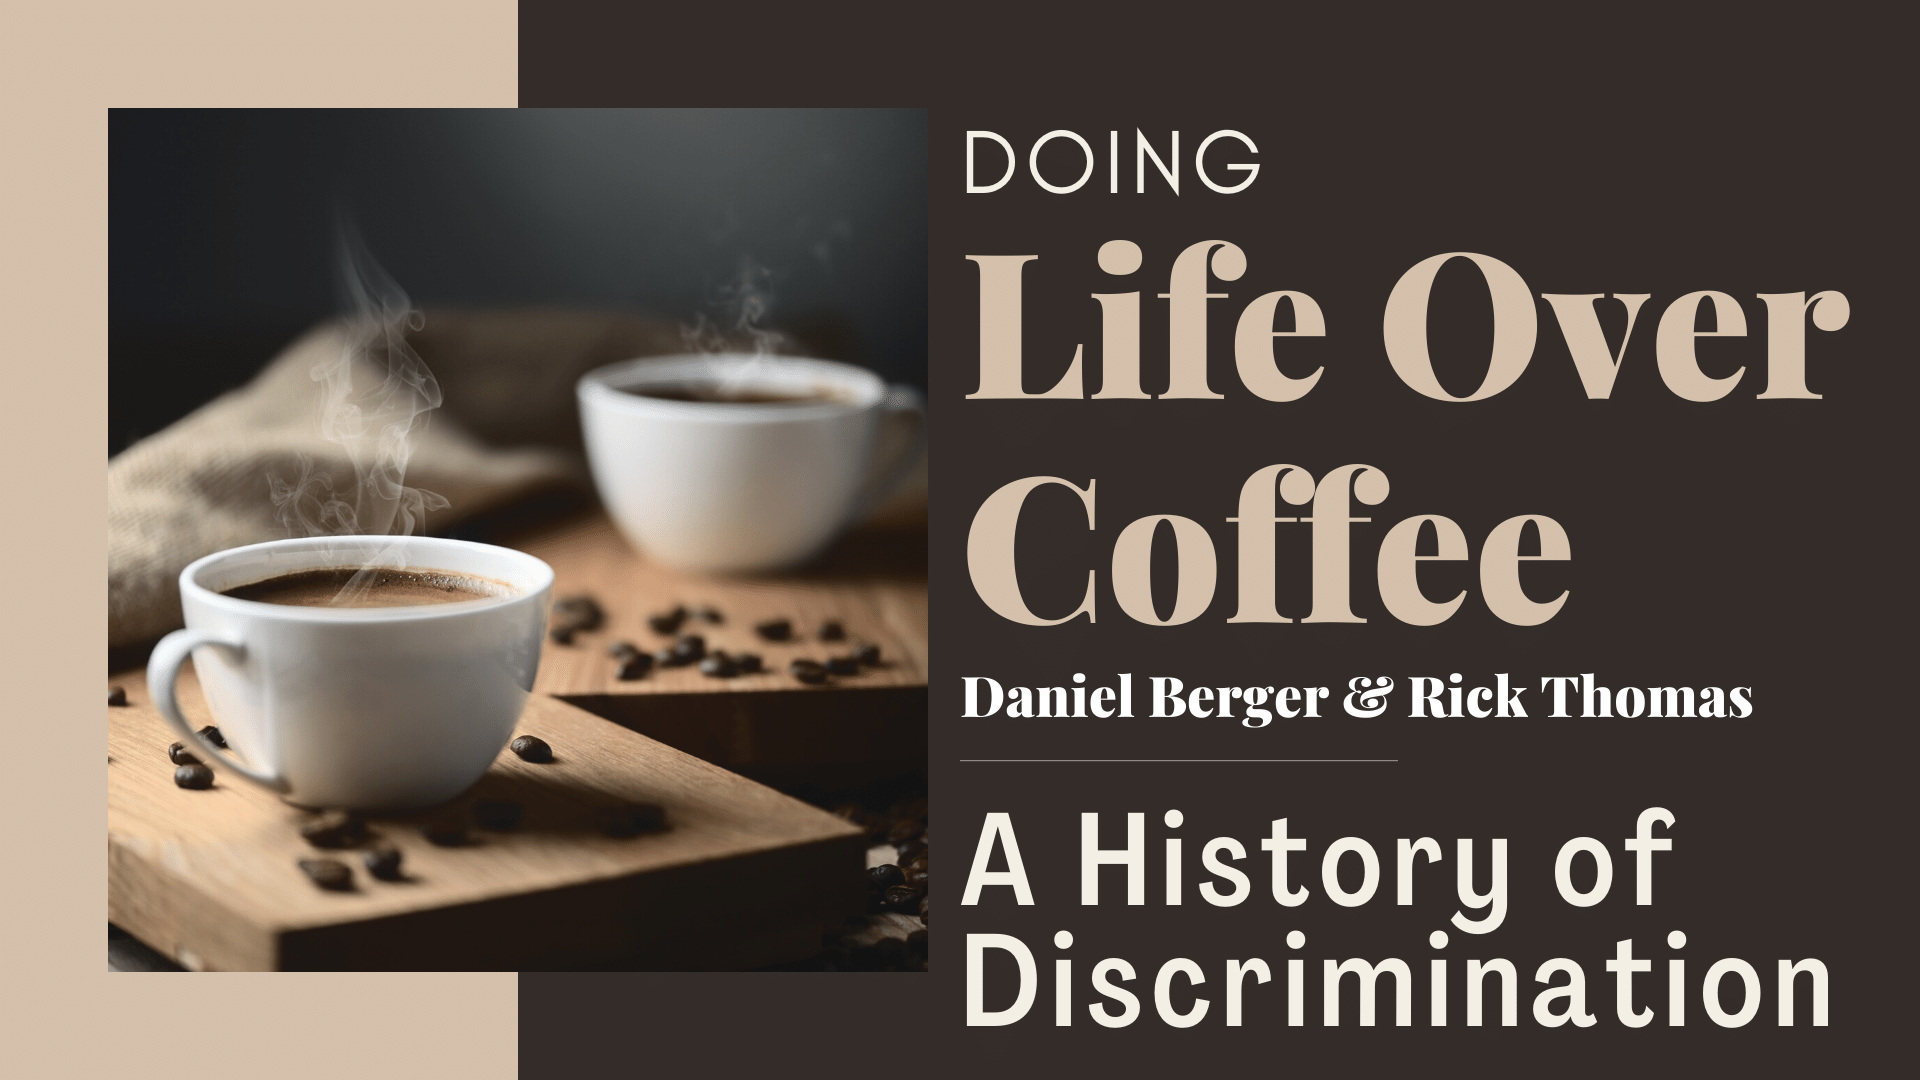 A History of Discrimination